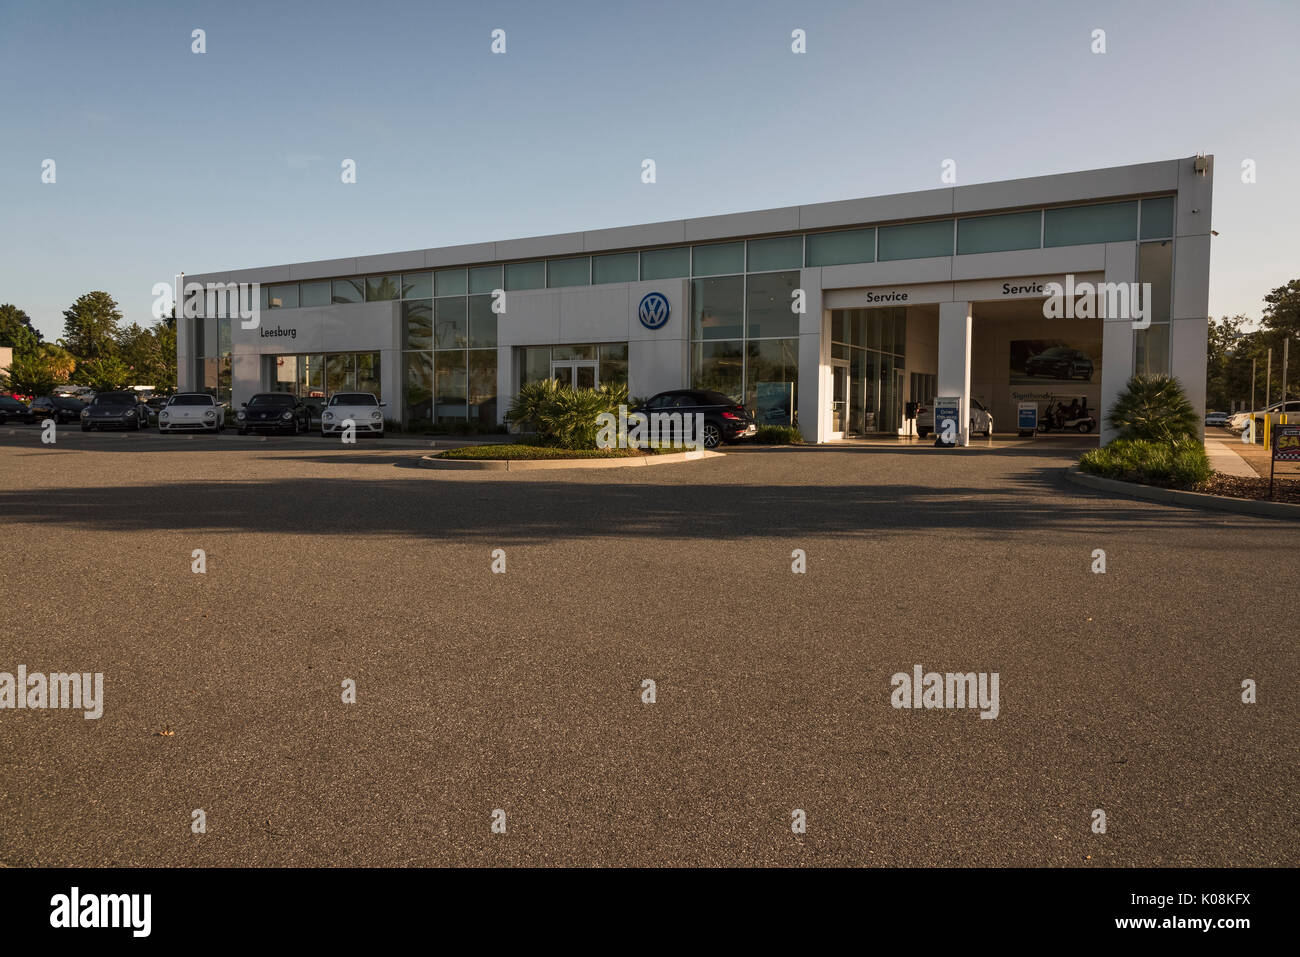 Afordable Stock Photos Amp Afordable Stock Images Alamy